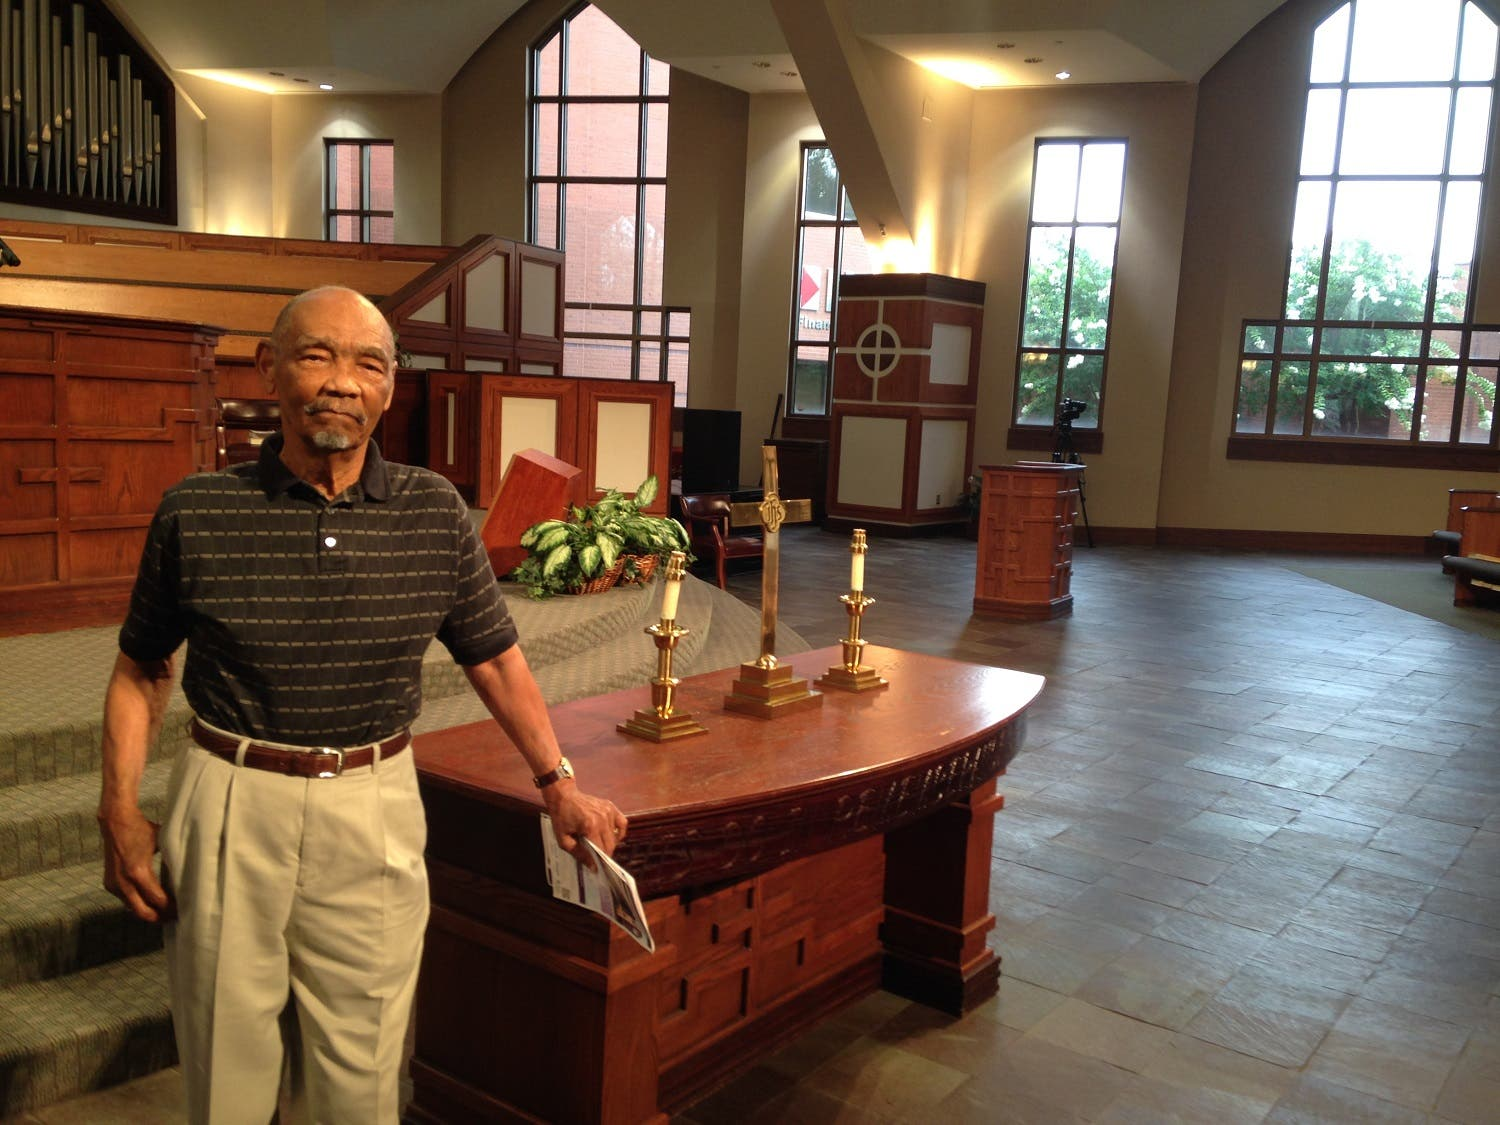 """Howard King, 91, stands inside Ebenezer Baptist Church, Sunday, July 10, 2016, in Atlanta. King has been a member of Ebenezer Baptist Church since the height of the civil rights movement, when he got to know then-pastor Martin Luther King Jr. King says he understands the frustrations of young black activists in the wake of two more killings of black men by police, and he says anyone who """"calls themselves Christian"""" should speak out about institutional racism that remains entrenched decades after the civil rights movement. Yet King also condemns the killing of five Dallas police officers by a lone gunman seeking retaliation for the killings of Alton Sterling in Louisiana and Philando Castile in Minnesota. """"There is no justification for taking life _ black, white, green or yellow,"""" he says. (AP)"""